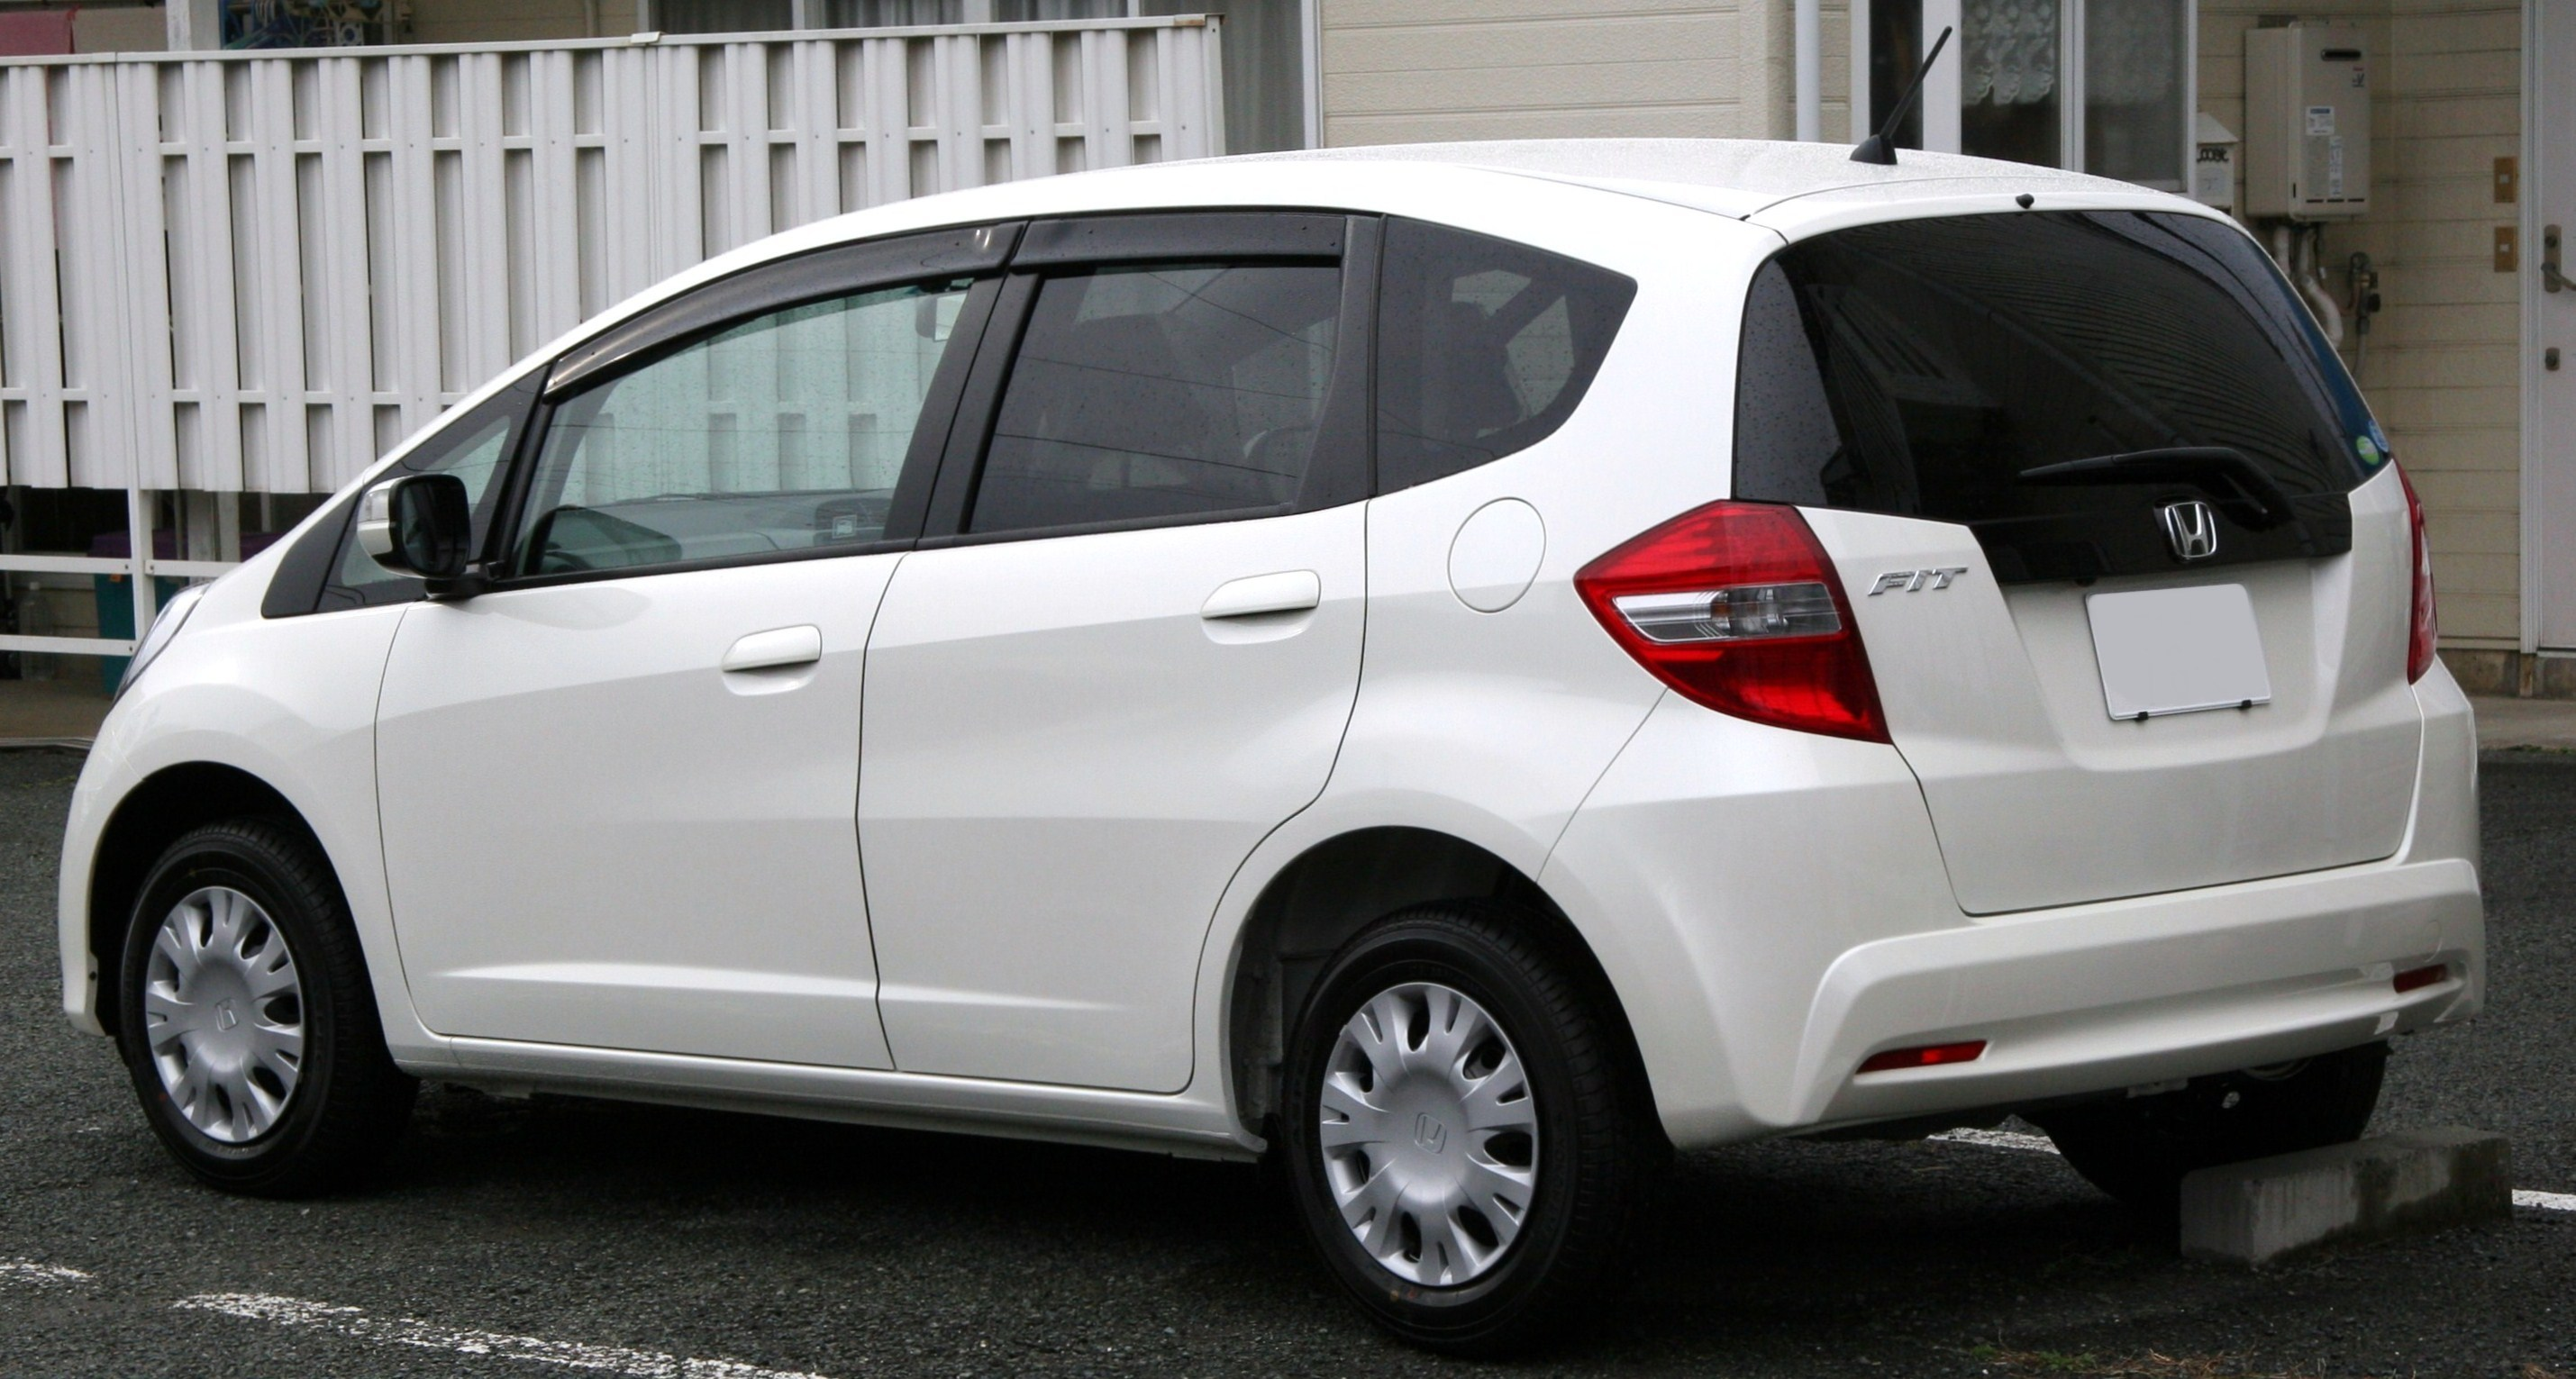 2010 Honda Fit 1.3 rear.jpg